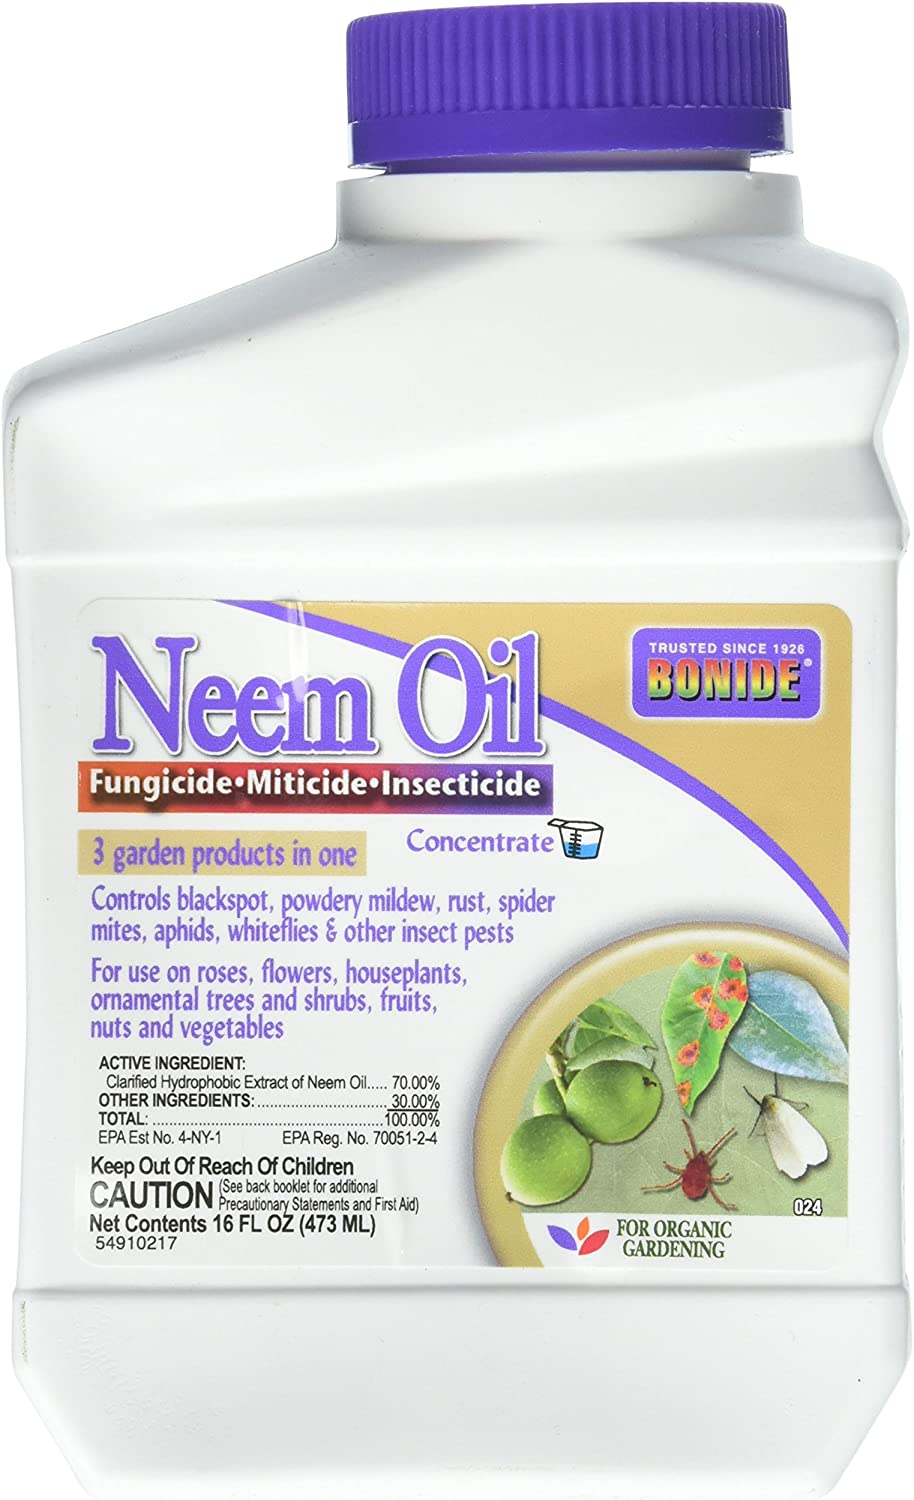 Neem Oil Fungicide Miticide Insecticide Concentrate 16 fl. oz.